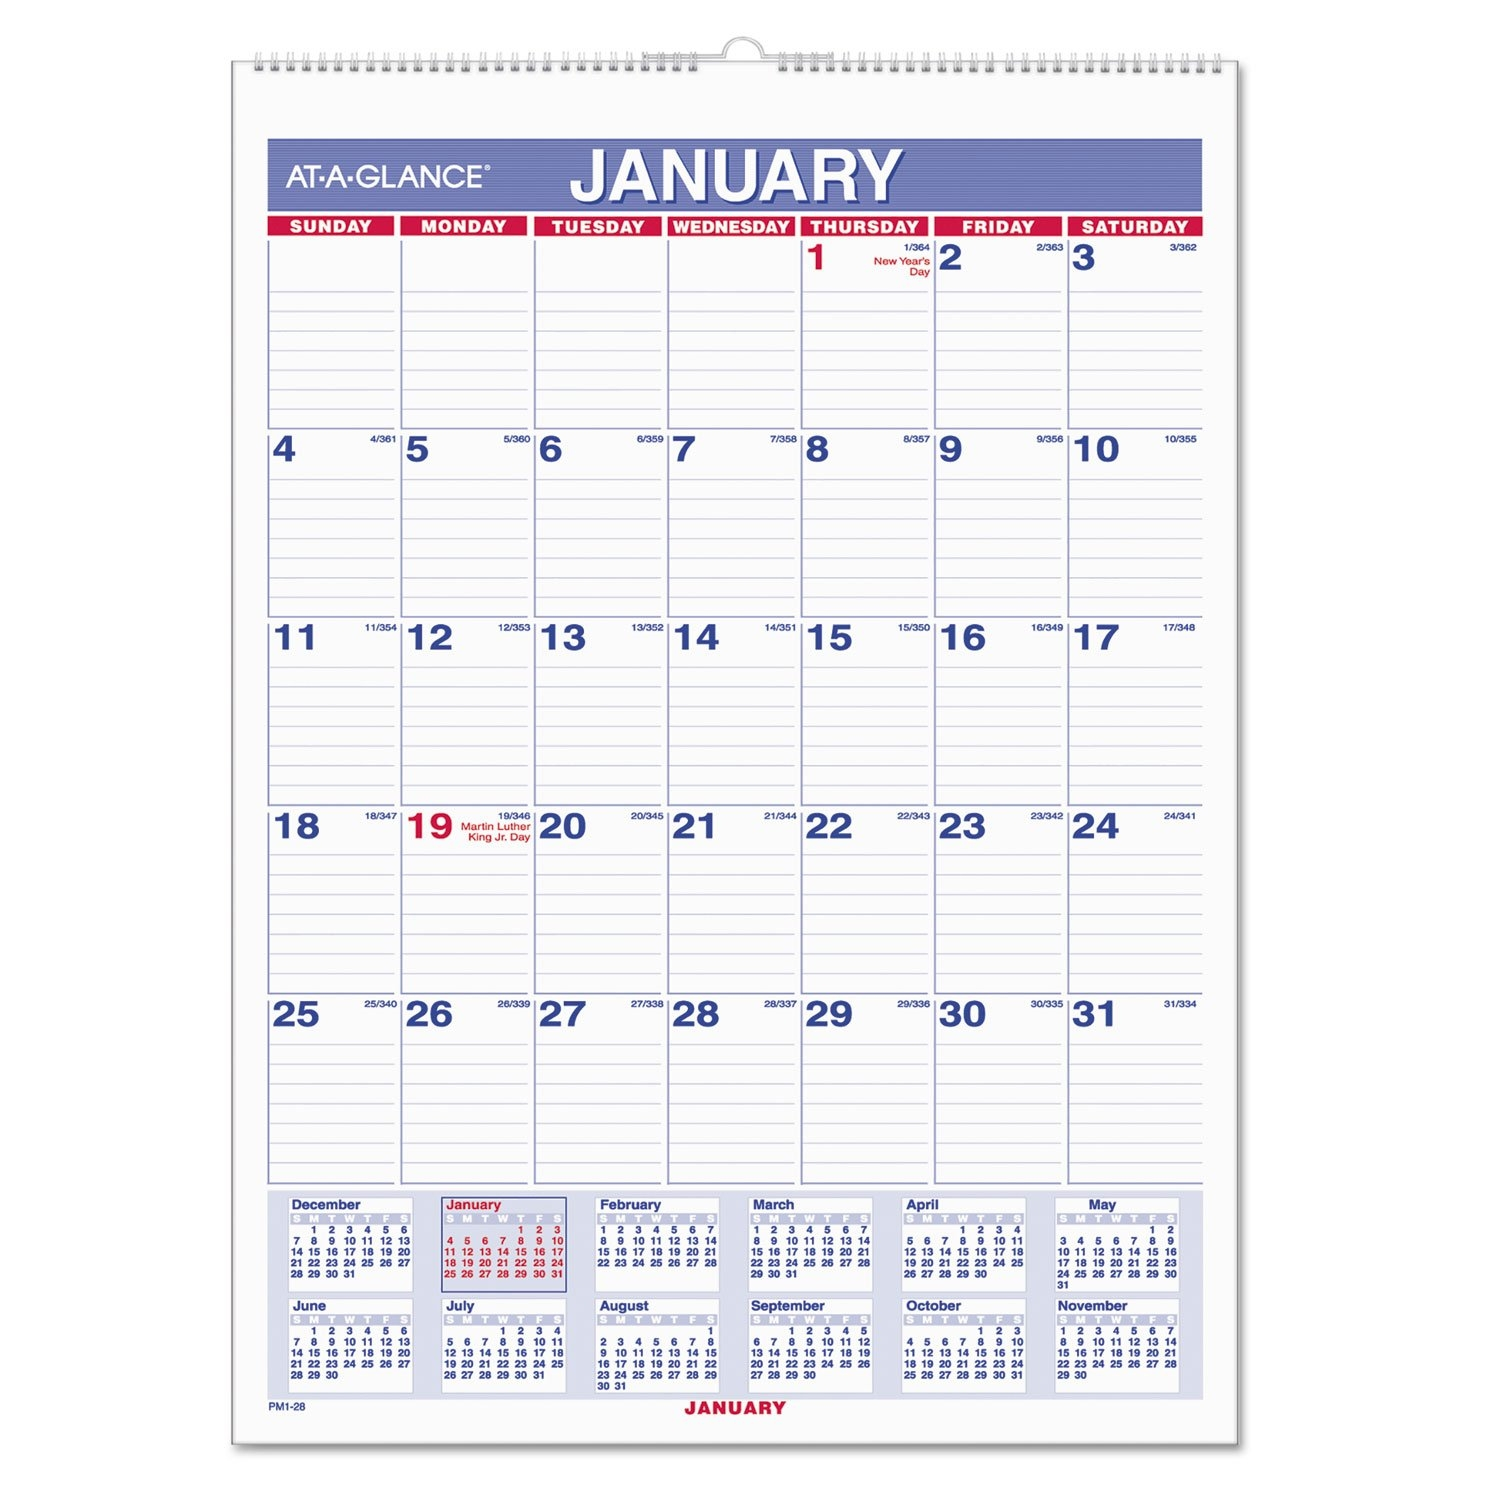 Monthly Wall Calendar With Ruled Daily Blocksat-A-Glance 2019 Calendar 8 1/2 X 11